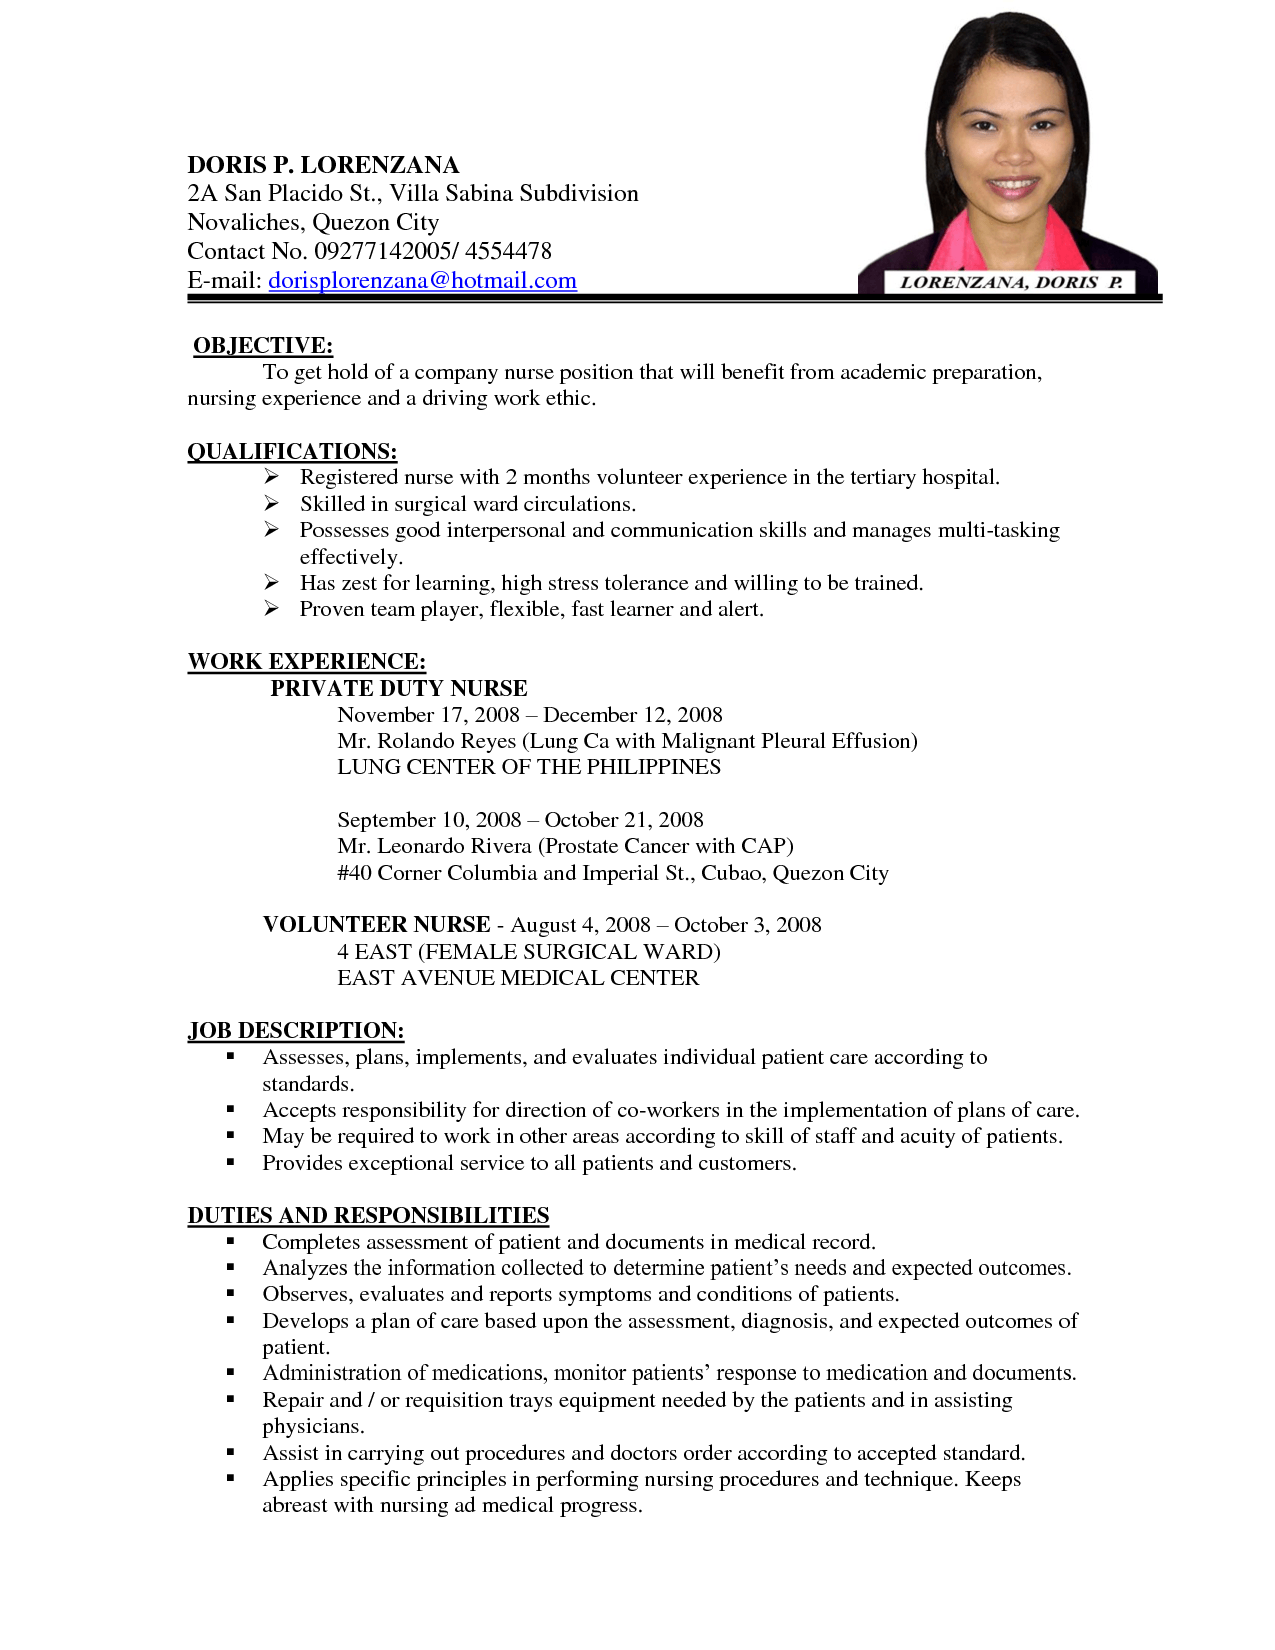 sample resume job application - Format Of A Resume For Job Application